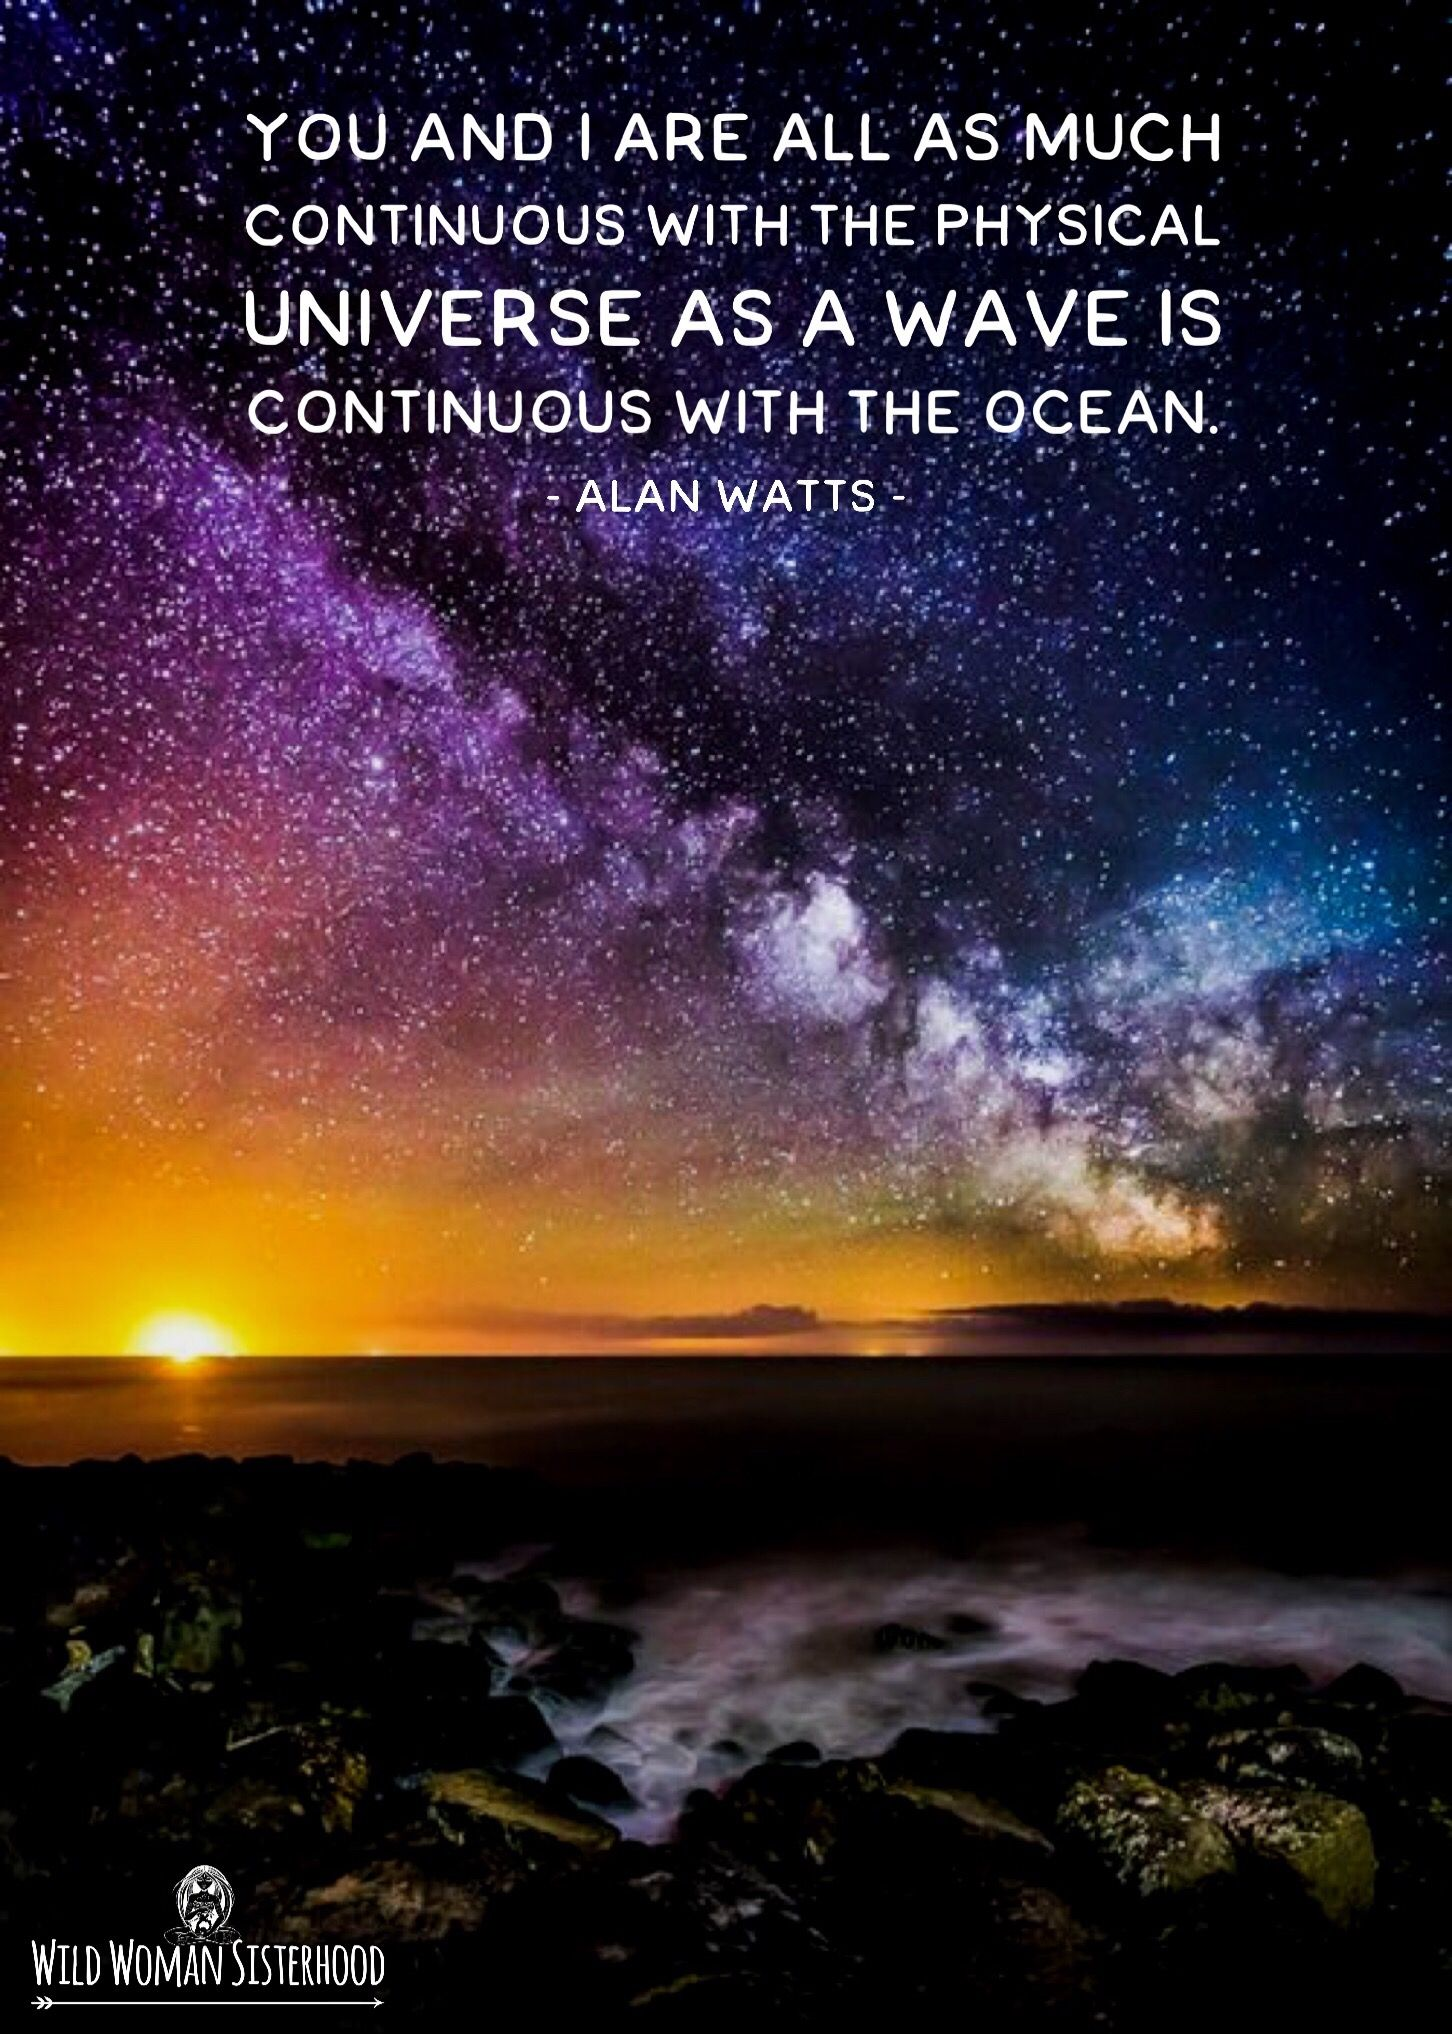 You and I are all as much continuous with the physical universe as a wave is continuous with the ocean. ~ Alan Watts WILD WOMAN SISTERHOODॐ #WildWomanSisterhood #iam #wildwomanmedicine #theuniversewithin #wildwomanteachings #yoga #justbreathe